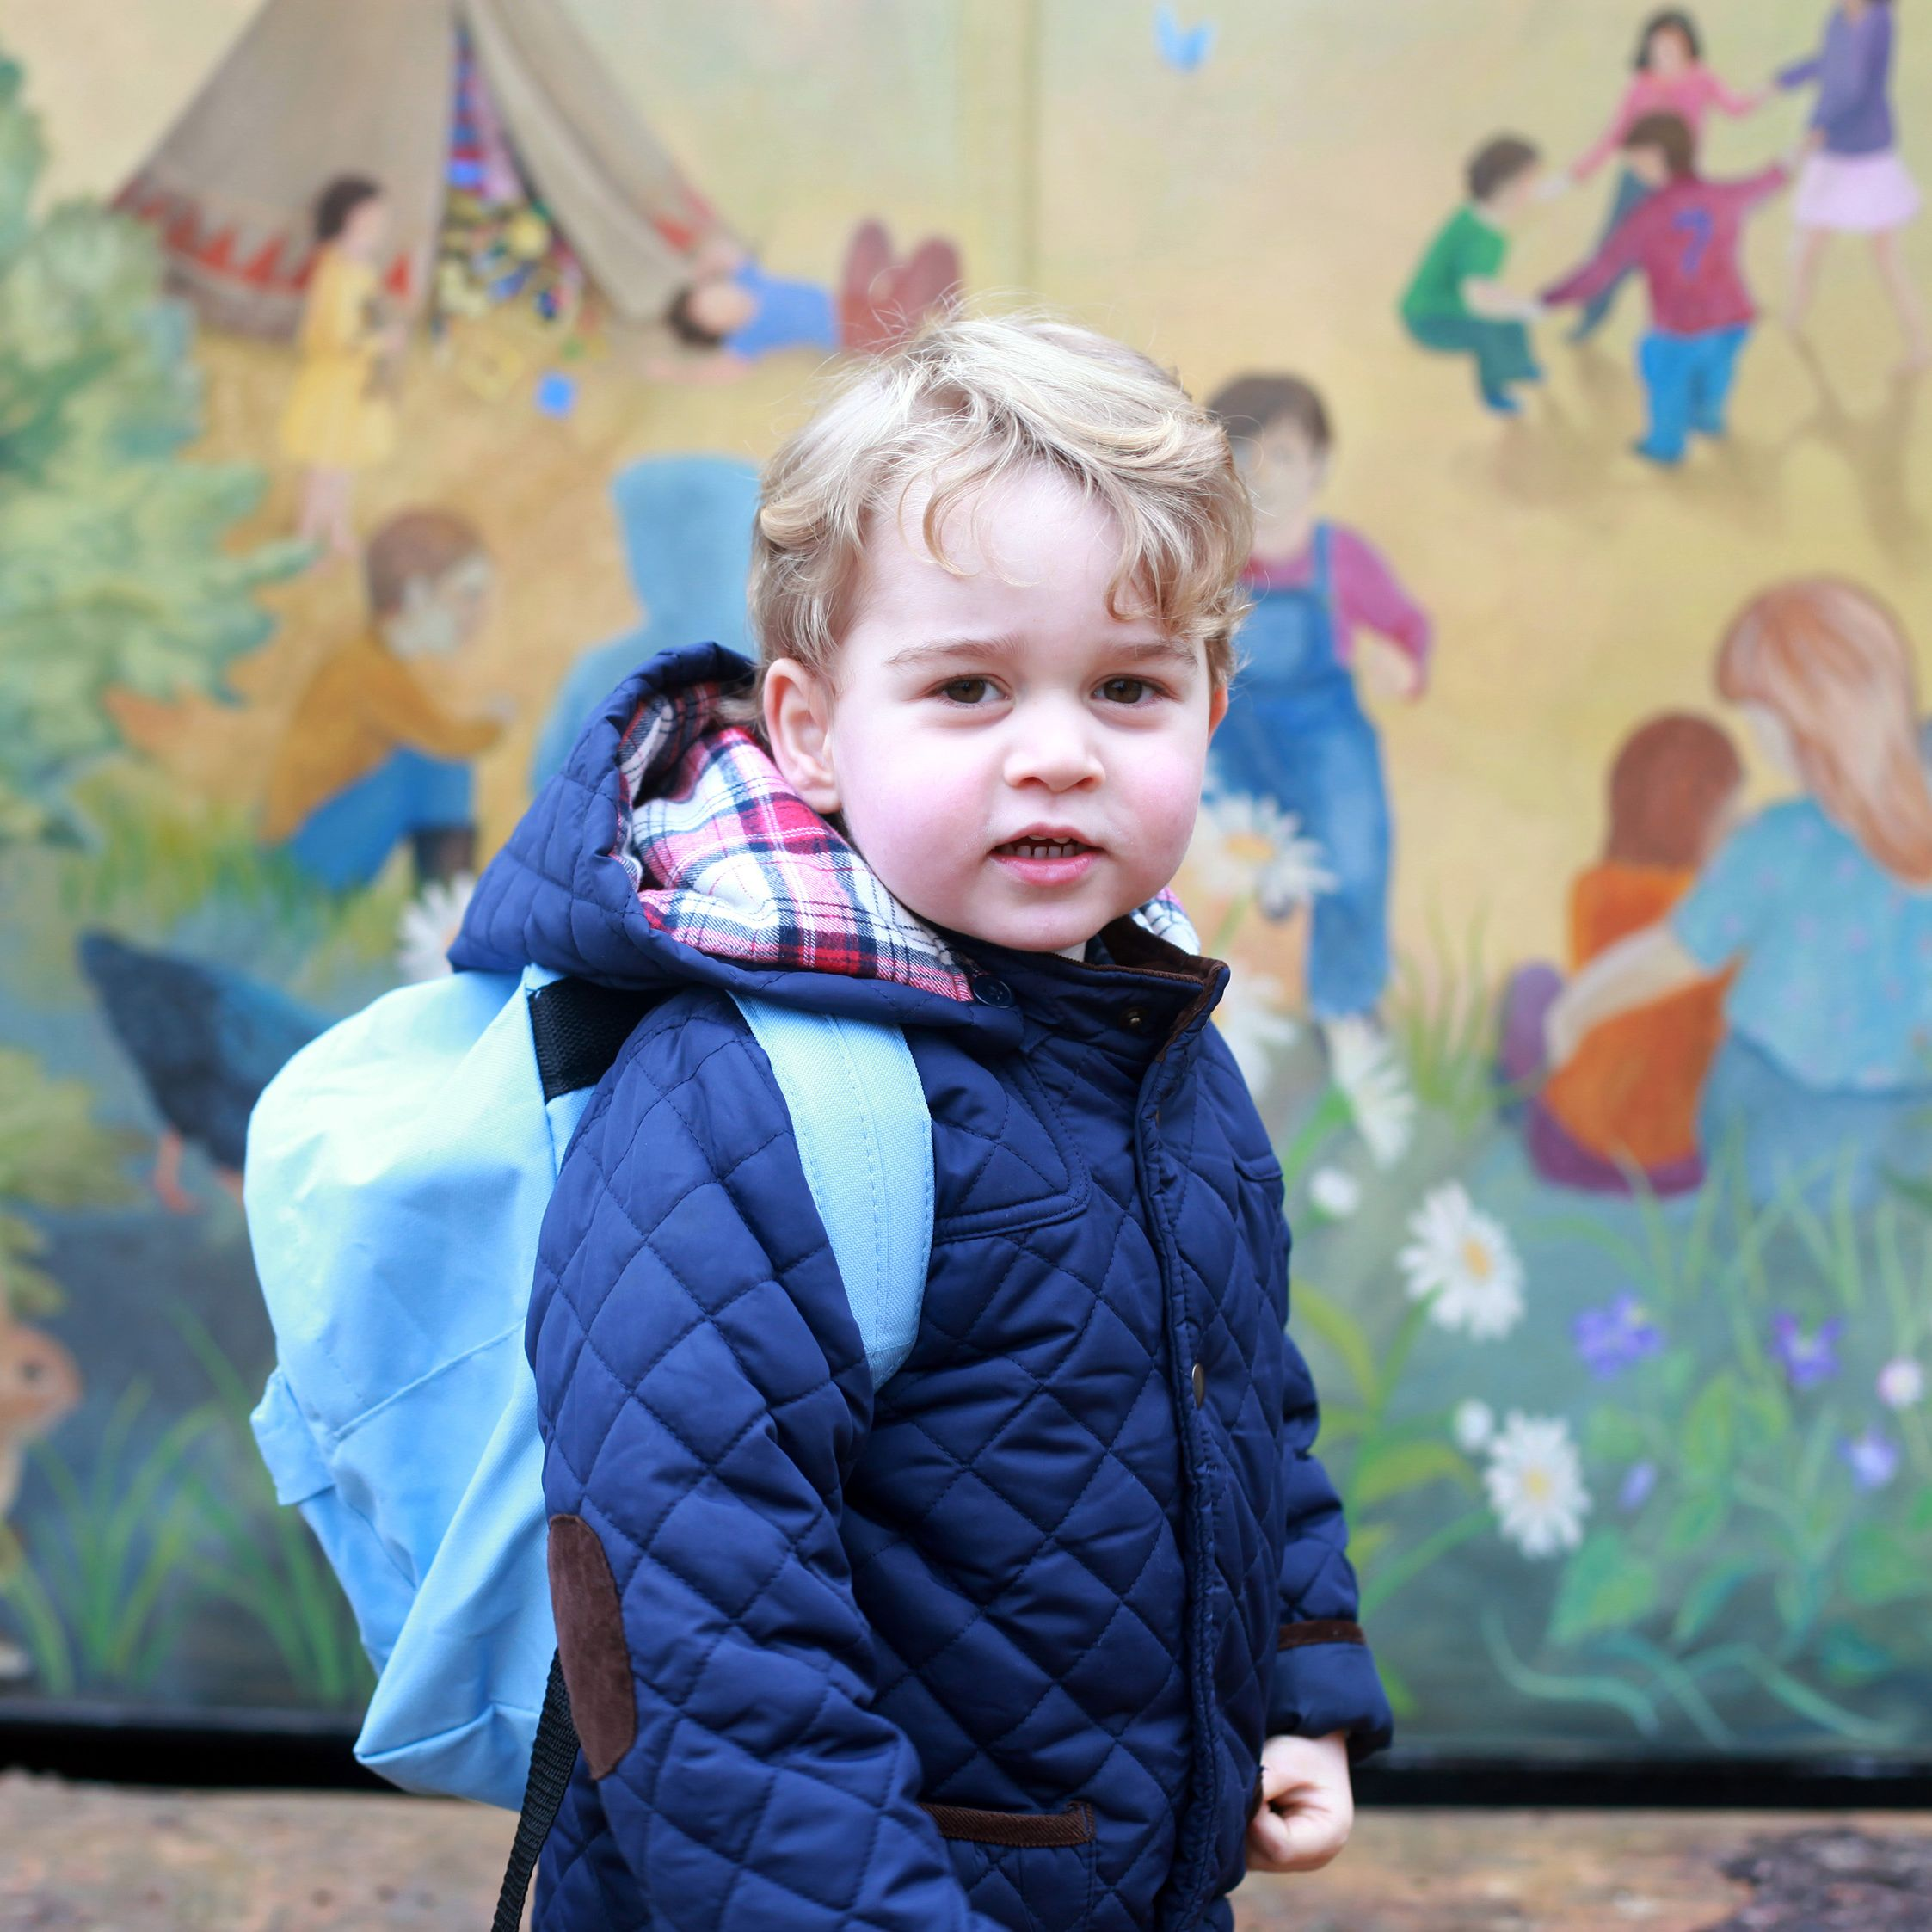 """<p><strong data-redactor-tag=""""strong"""">January 6</strong>: Prince George attends his <a href=""""http://www.harpersbazaar.com/celebrity/latest/news/a13559/prince-george-first-day-of-school/"""" target=""""_blank"""" data-tracking-id=""""recirc-text-link"""" data-external=""""true"""">first day of school</a>.</p>"""